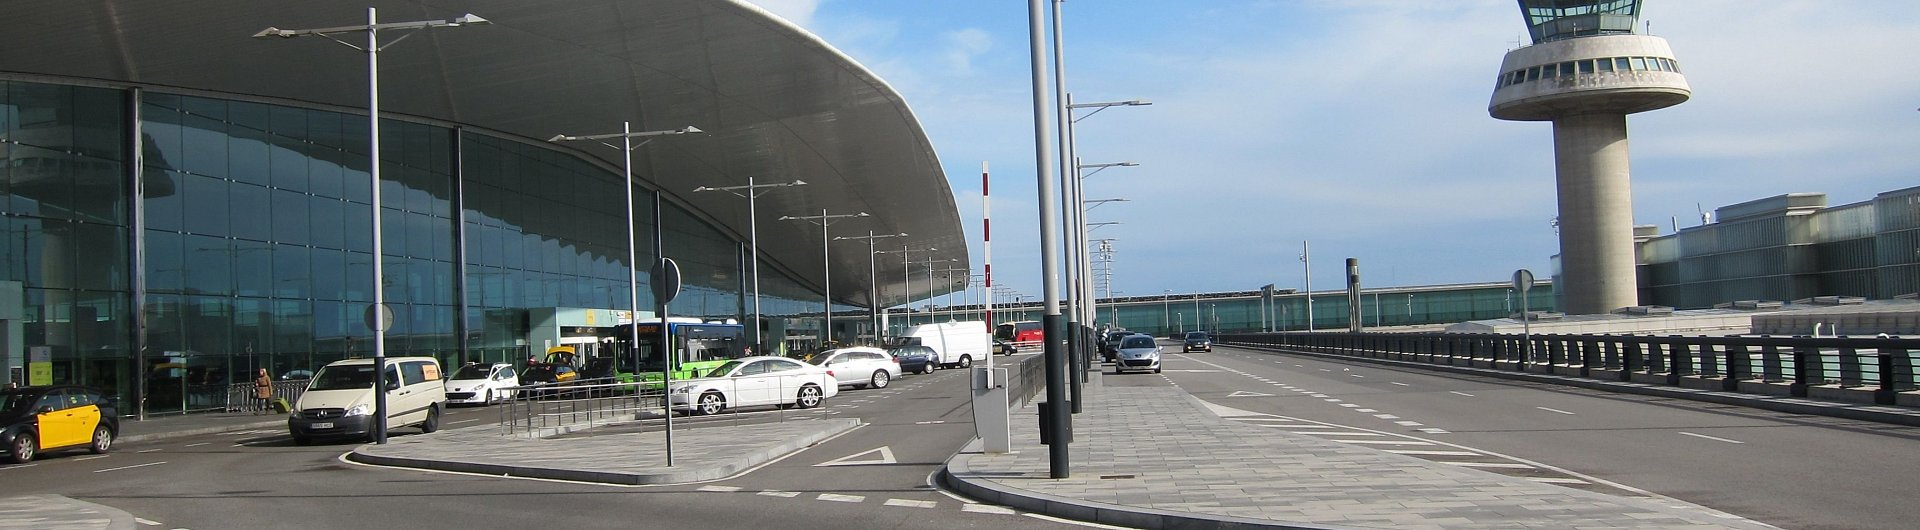 Meeting Point T1 Park and Greet Barcelona Aerpuerto